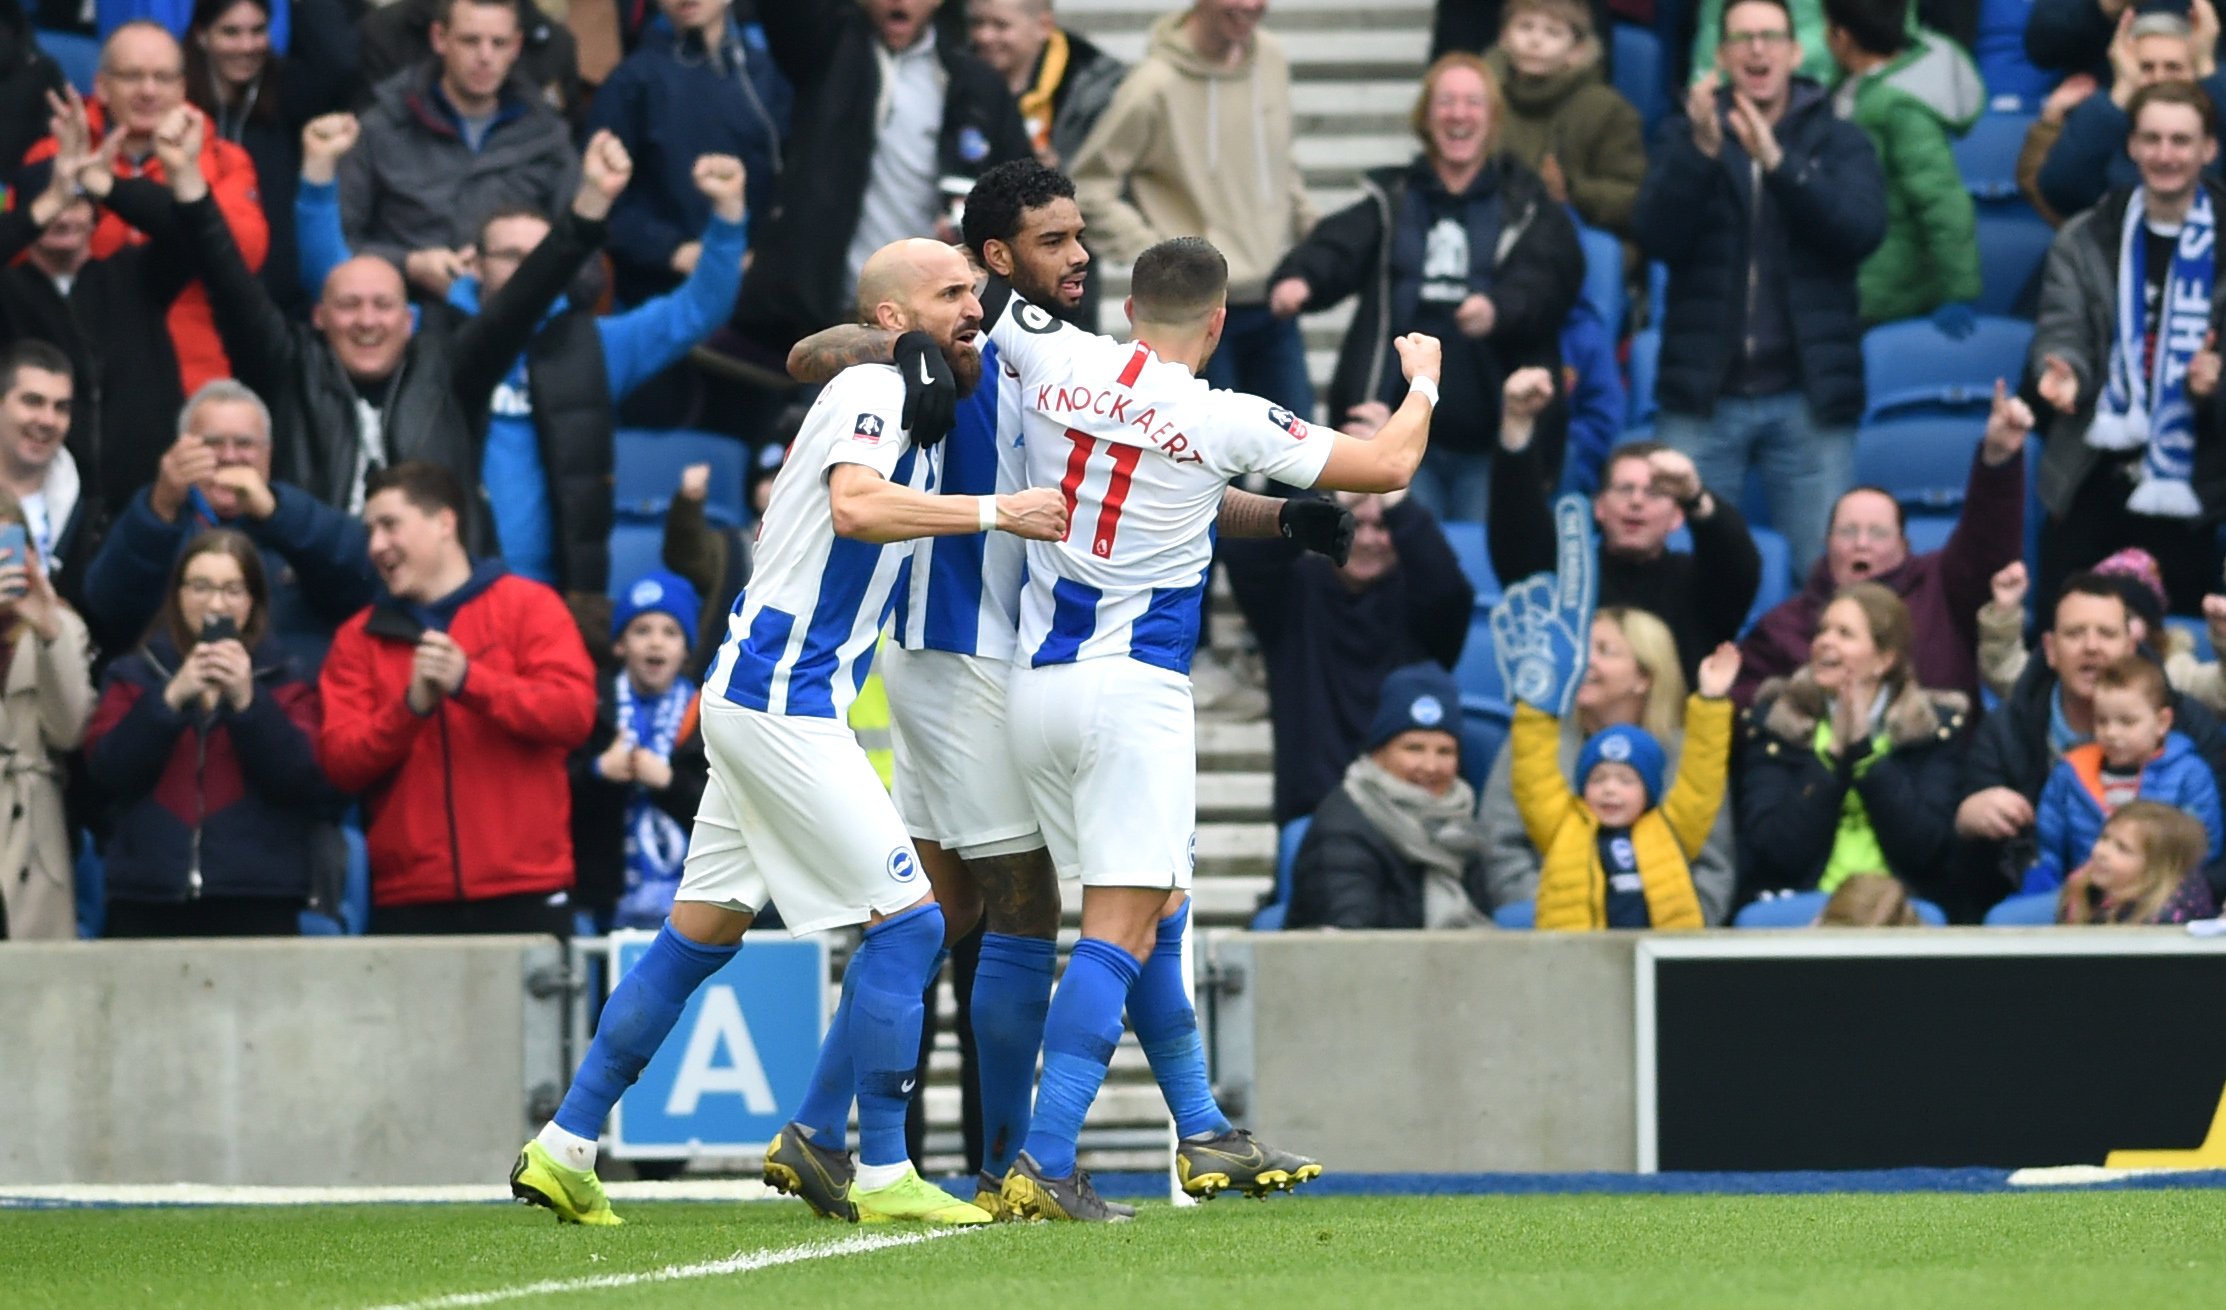 Knockaert delighted to get Albion off on the right foot